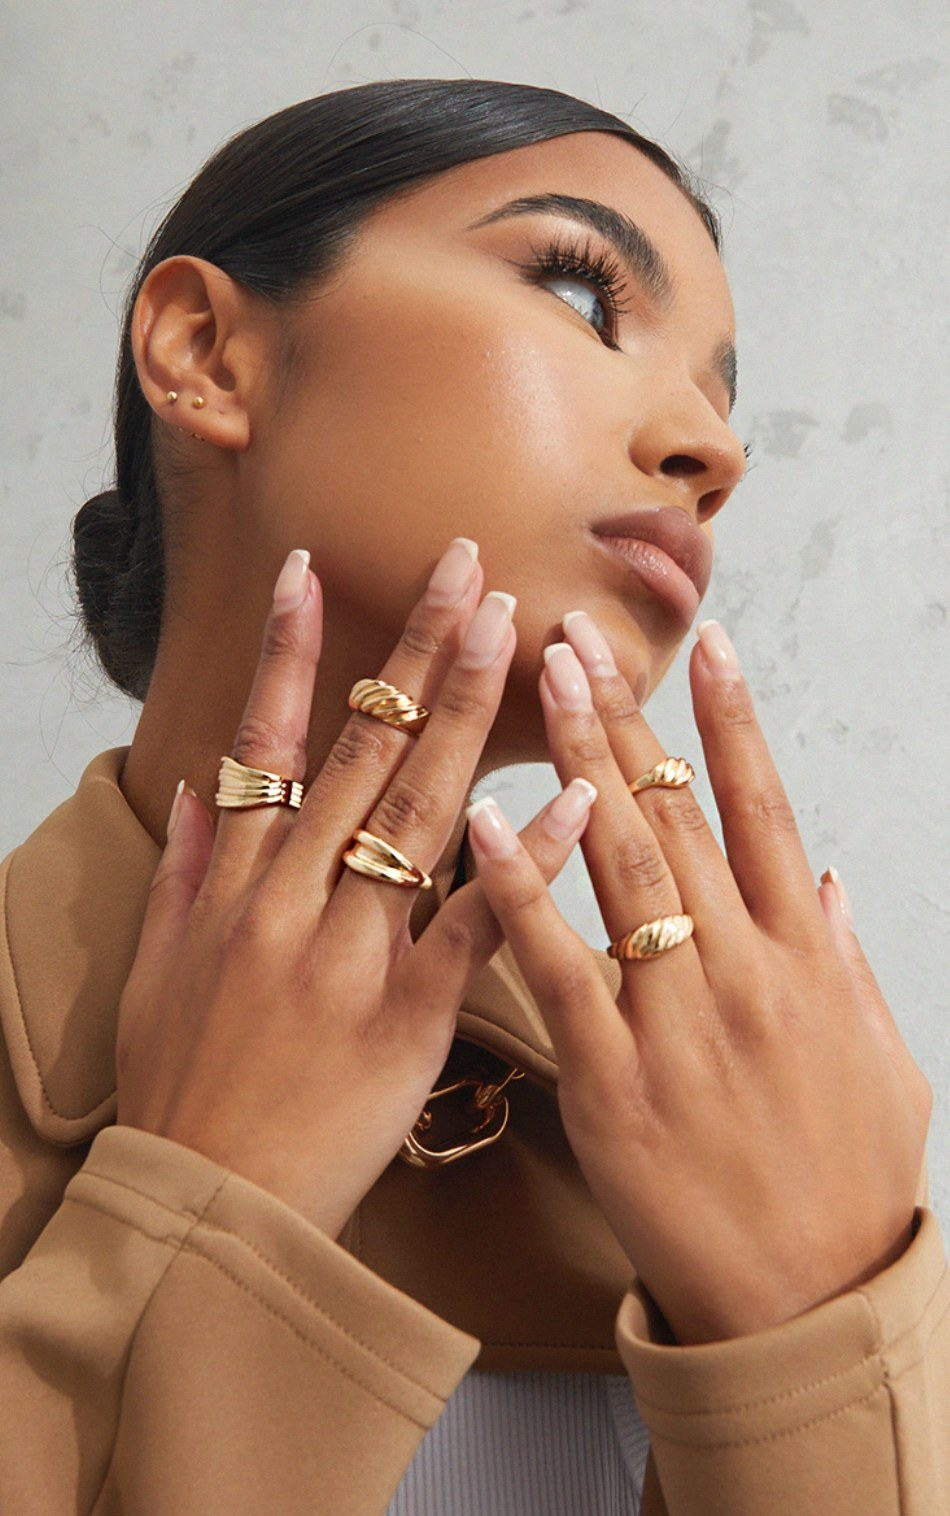 model holding hands up to the face wearing the five chunky rings